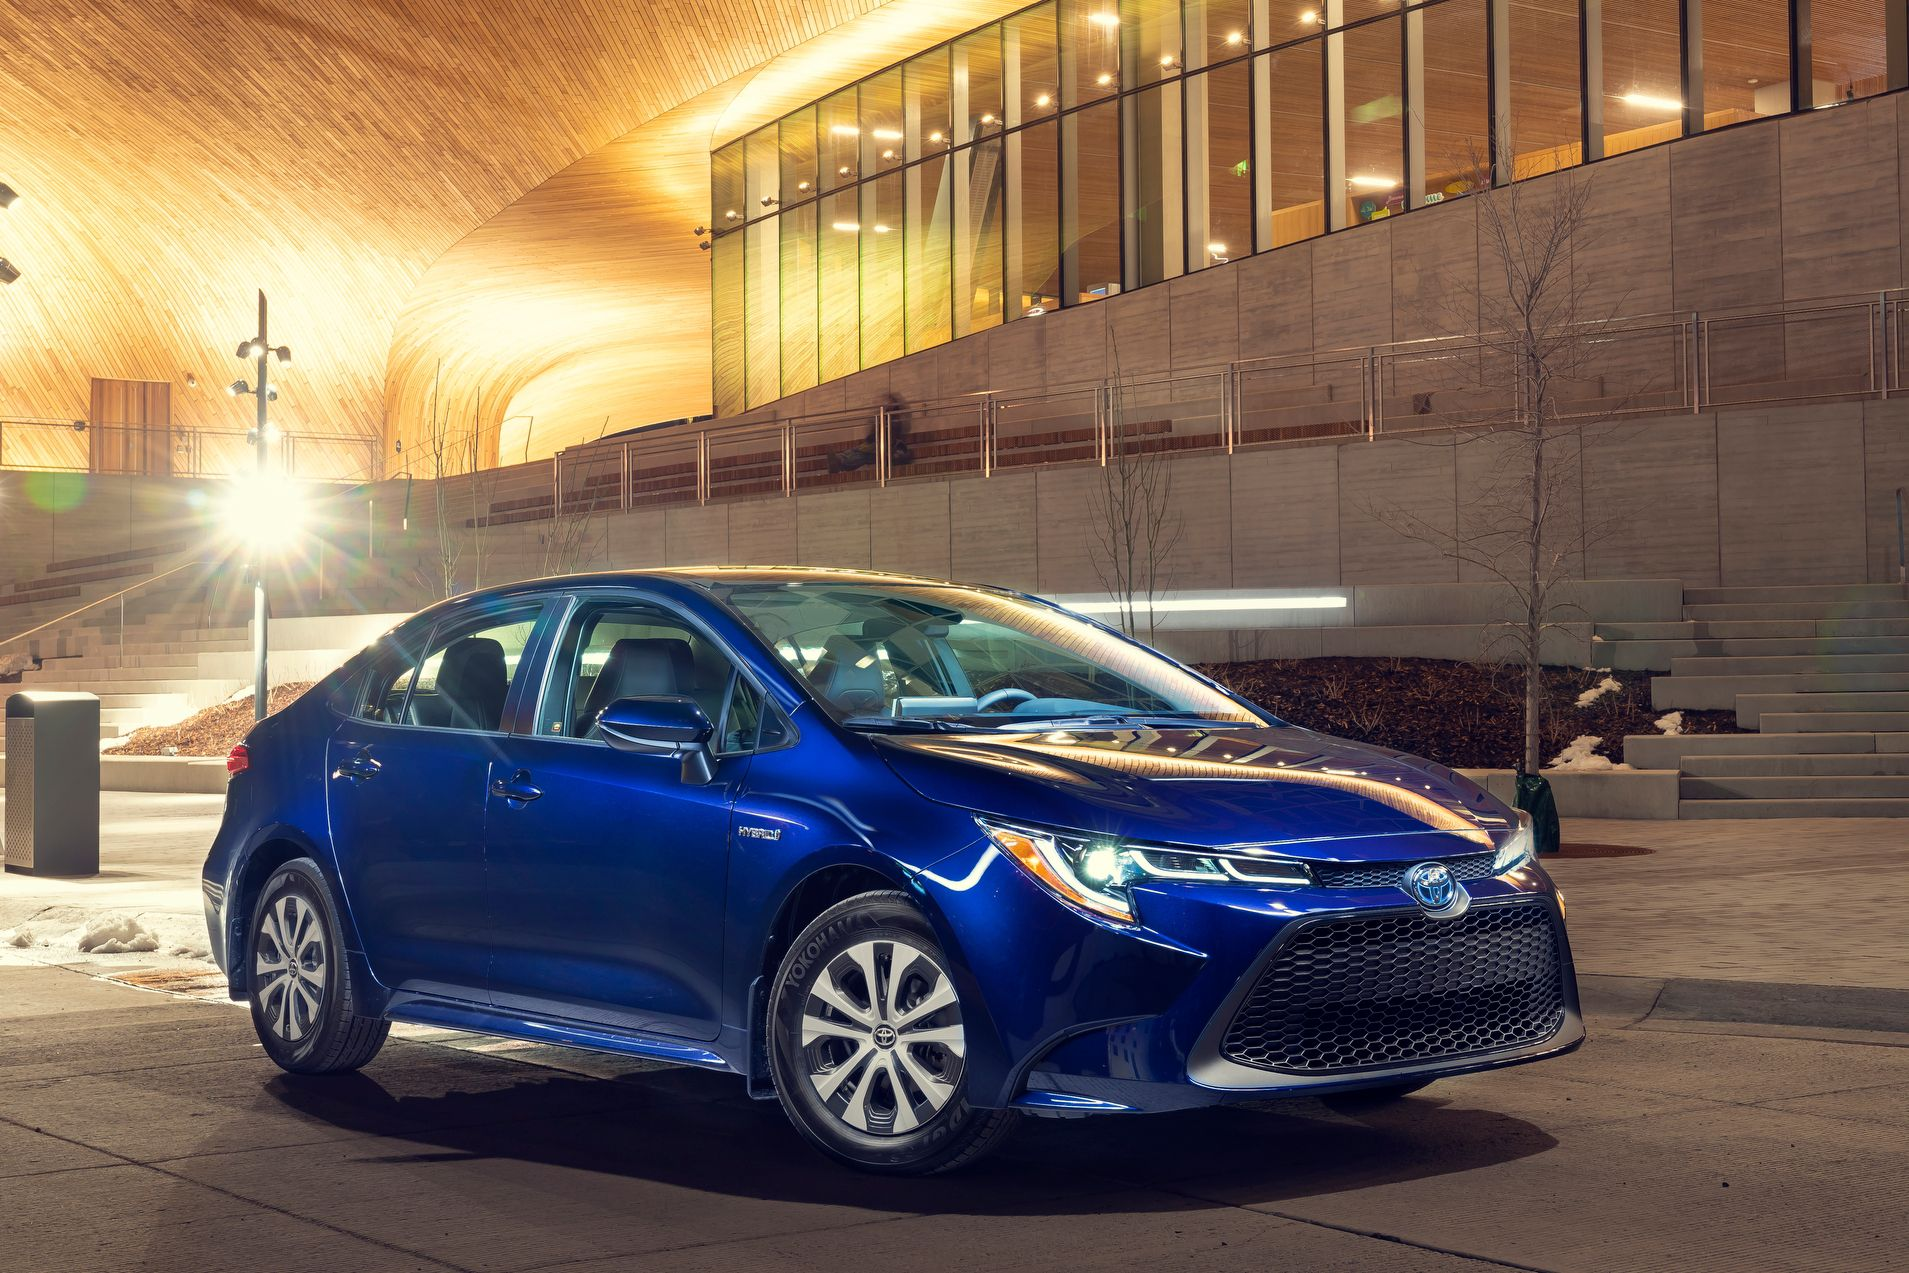 With Added Features 2020 Toyota Corolla Hybrid Maintains Its Retion For Reliability